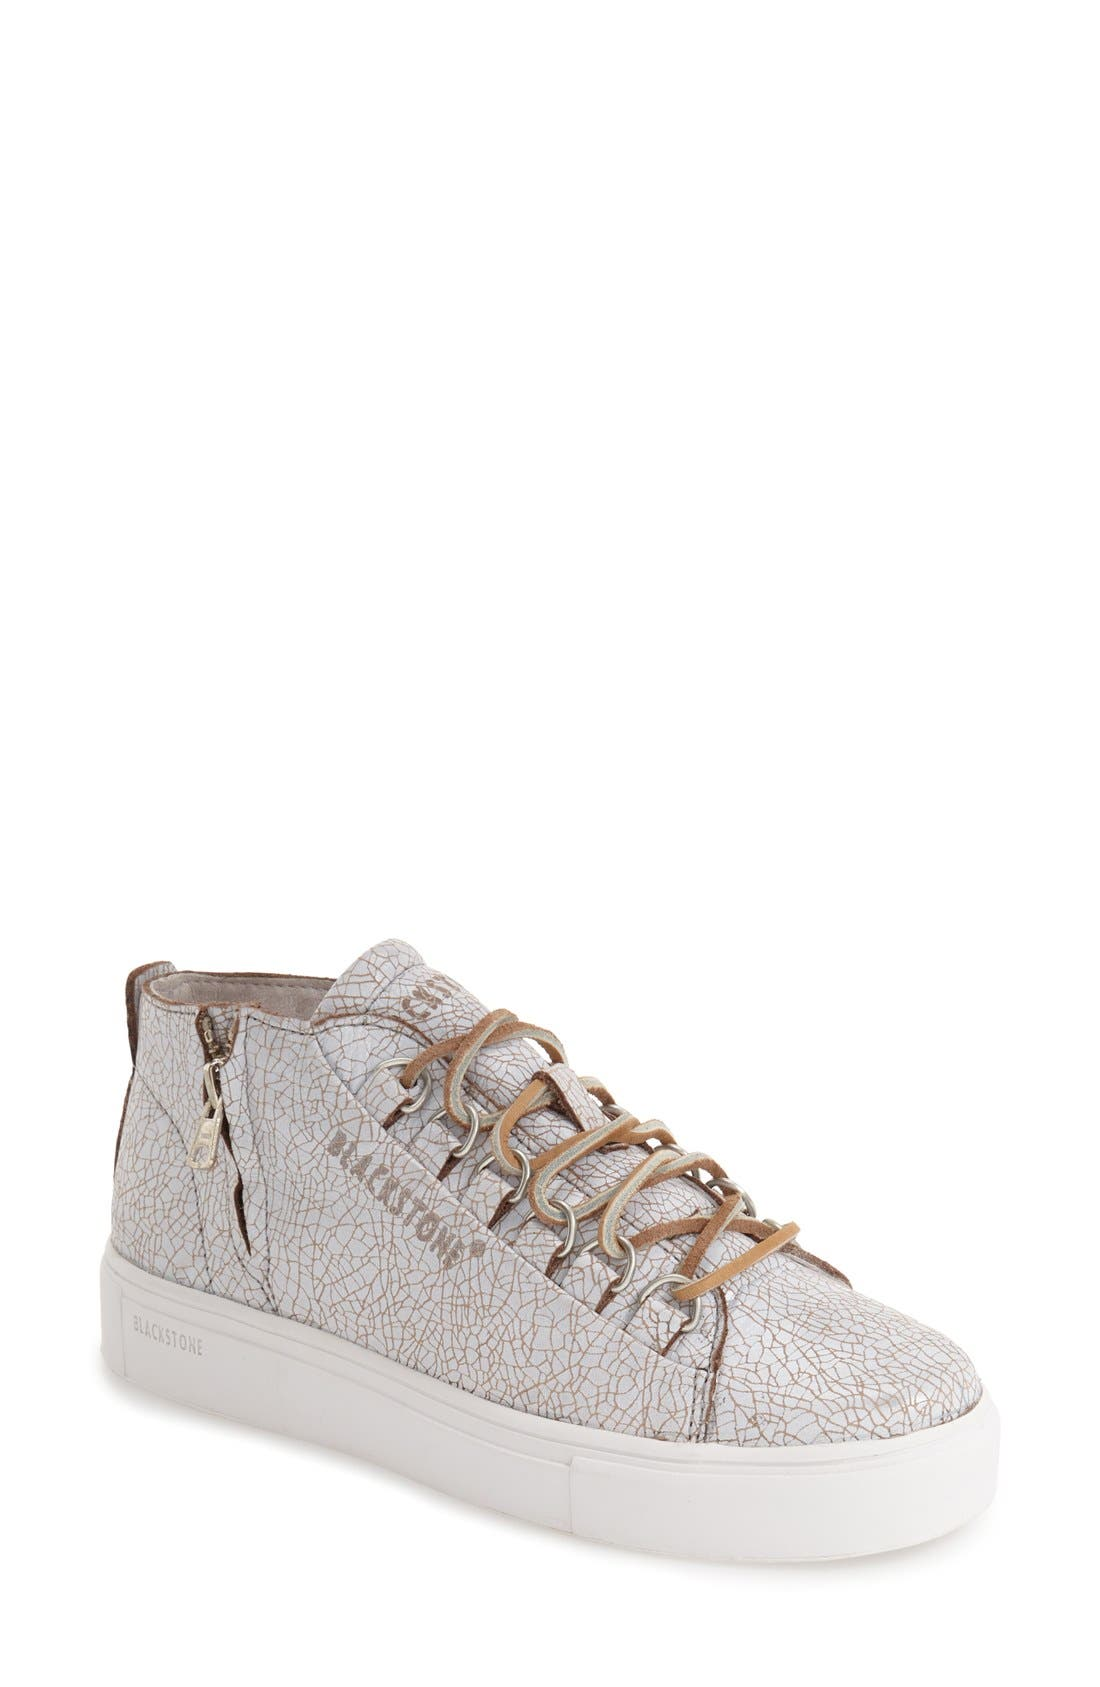 'LL60' Midi Sneaker,                             Main thumbnail 1, color,                             Hazel/ White Leather